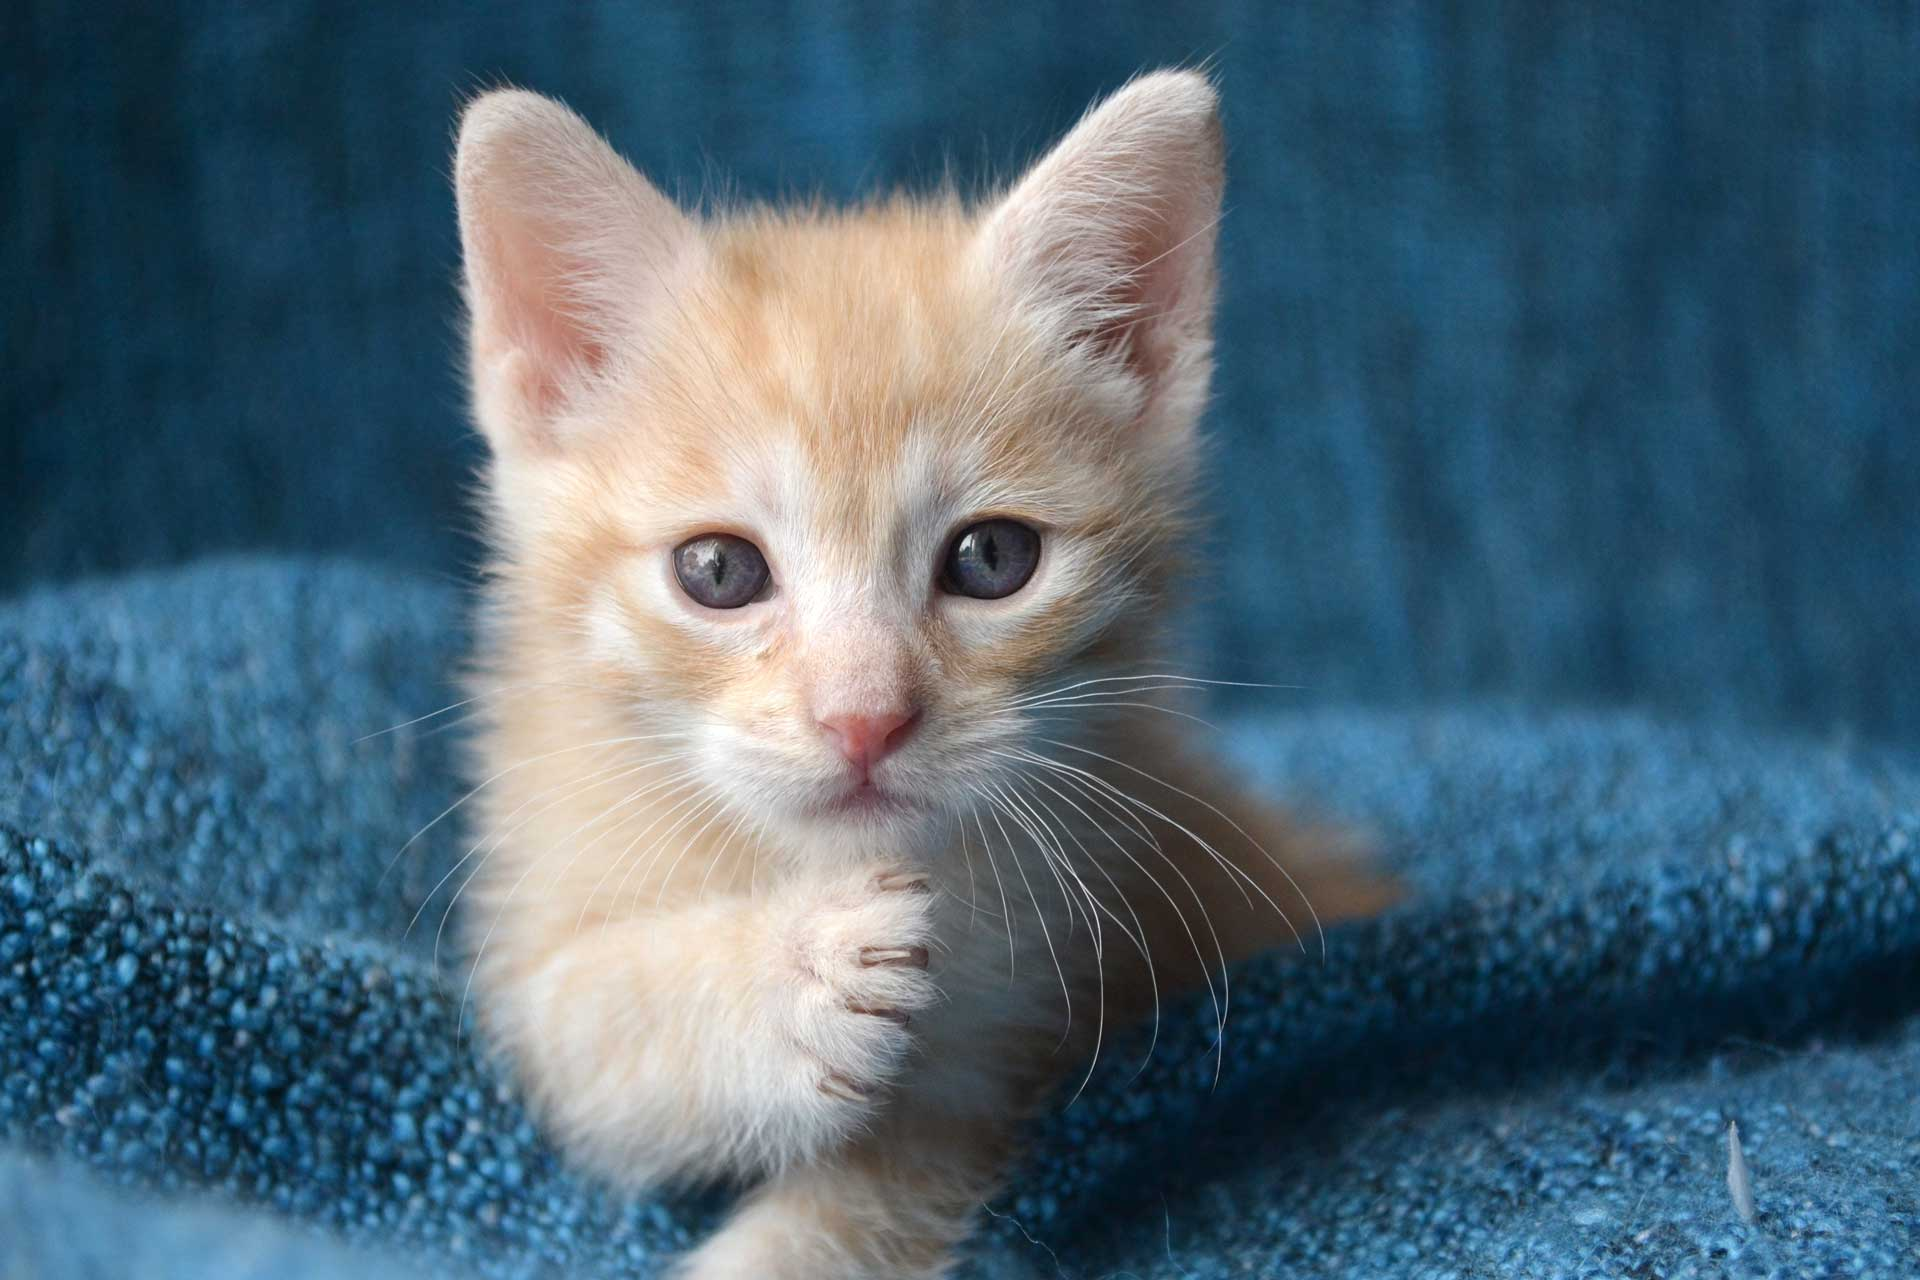 Image of Kitten used in a post by Carpet Keepers in Leesburg VA